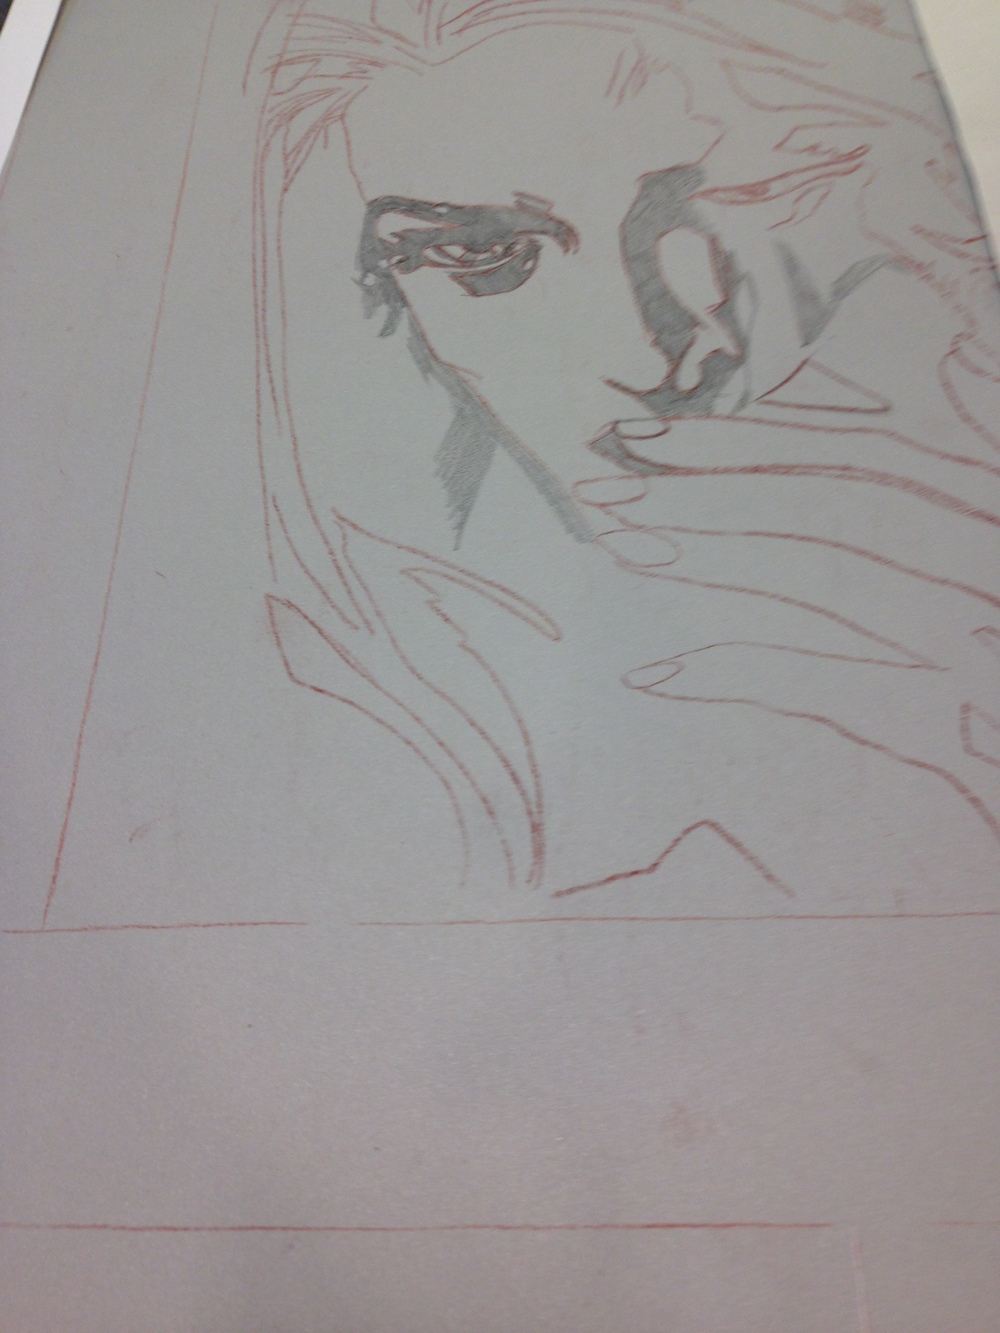 Drawing on an aluminum plate with a wax crayon.